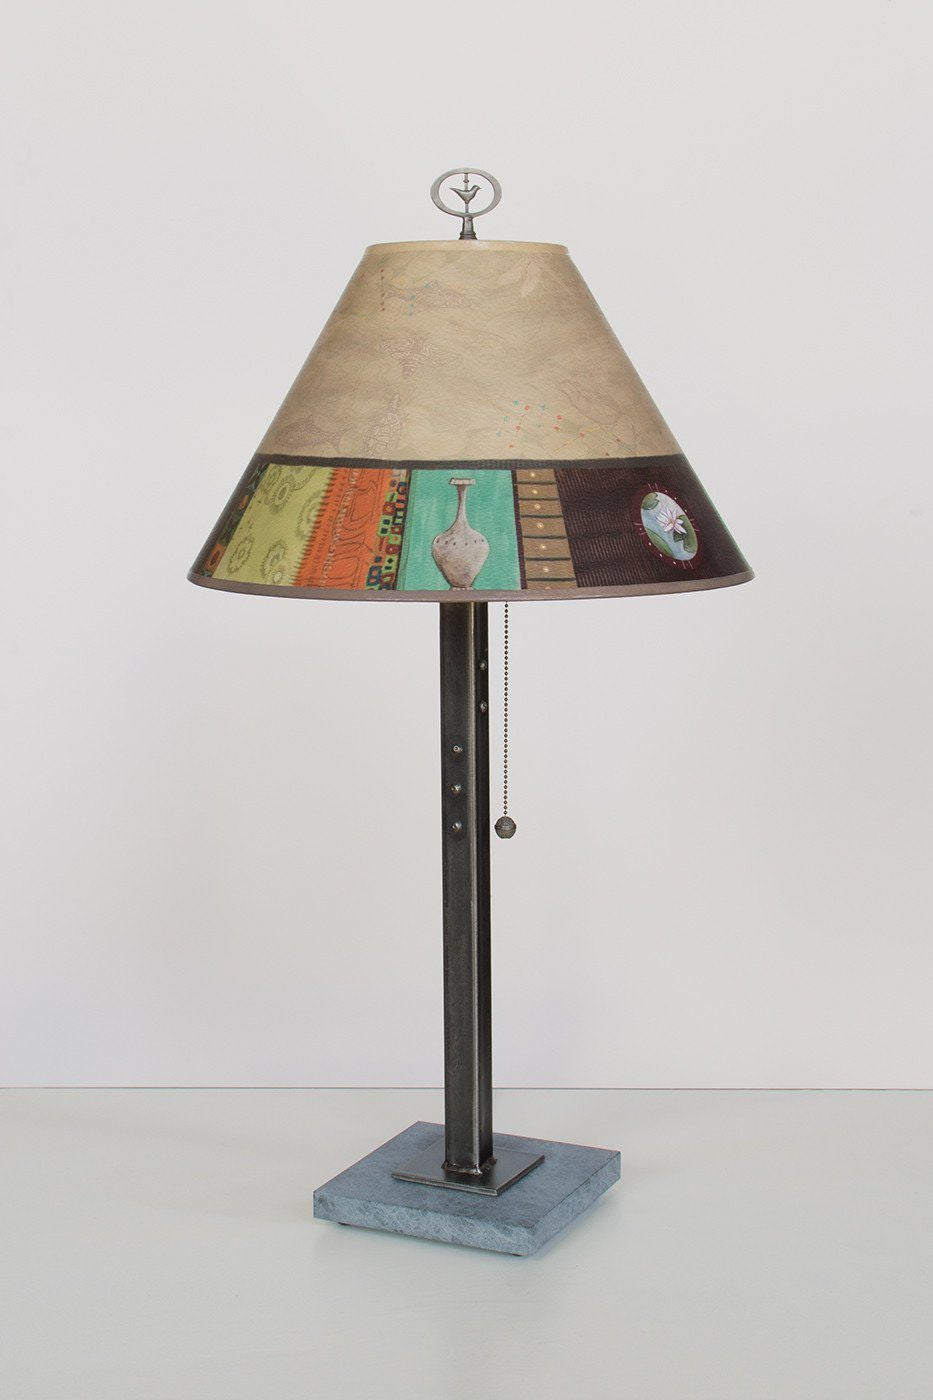 Steel Table Lamp on Marble with Medium Conical Shade in Linen Match Lit